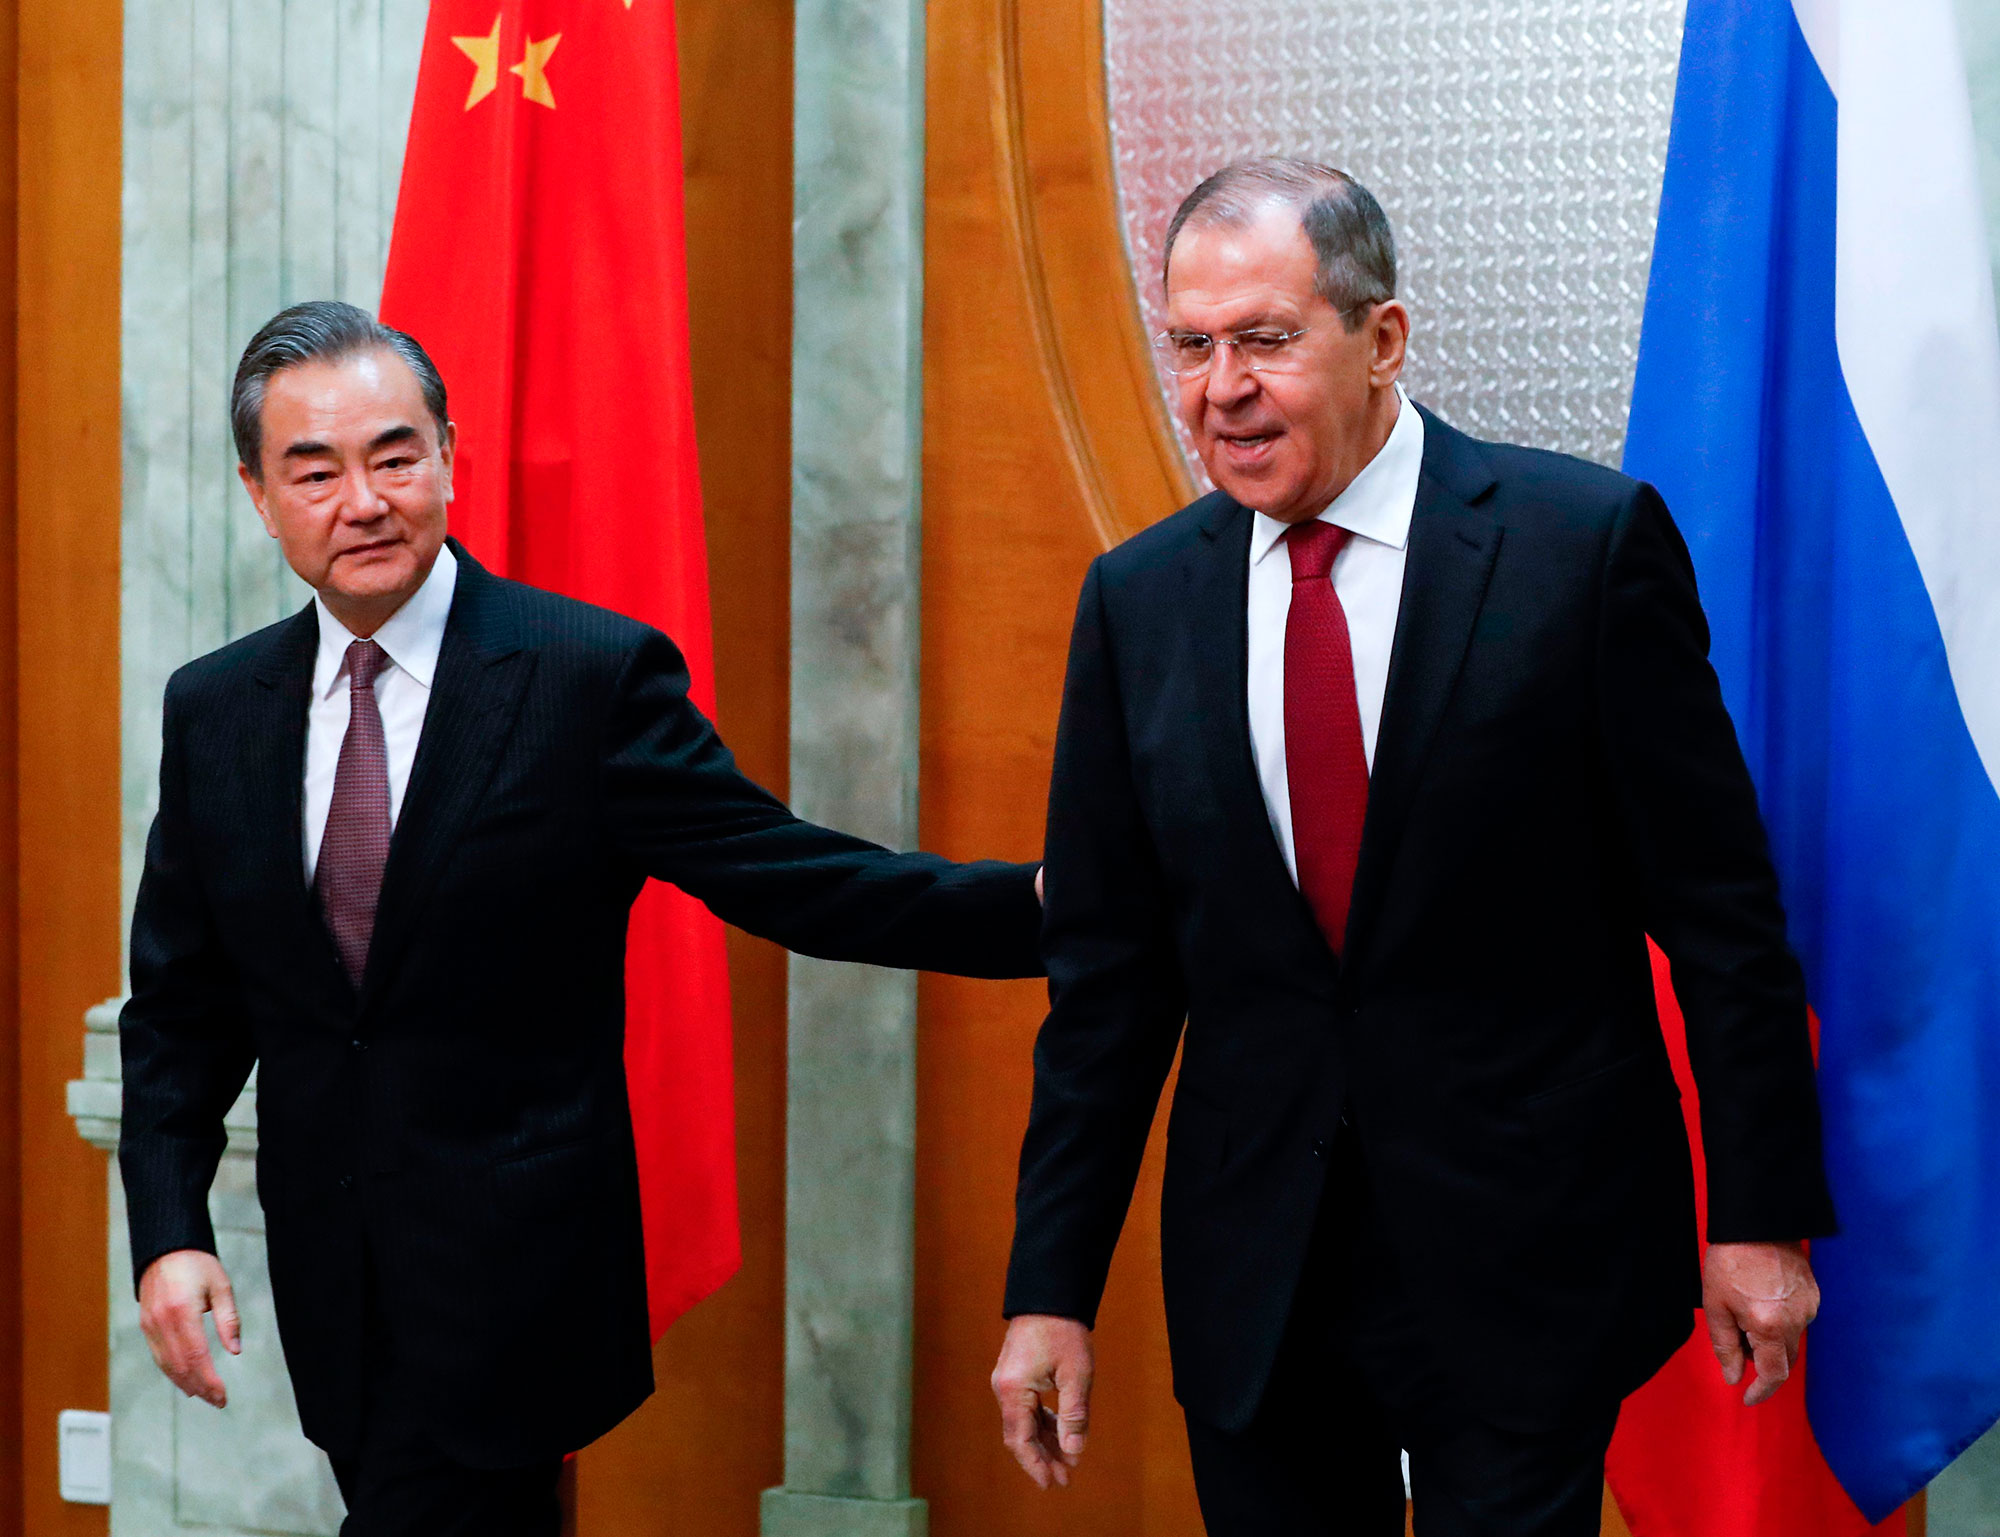 In this file photo, Russian Foreign Minister Sergei Lavrov, right, meets with his Chinese counterpart Wang Yi in Sochi on May 13, 2019.